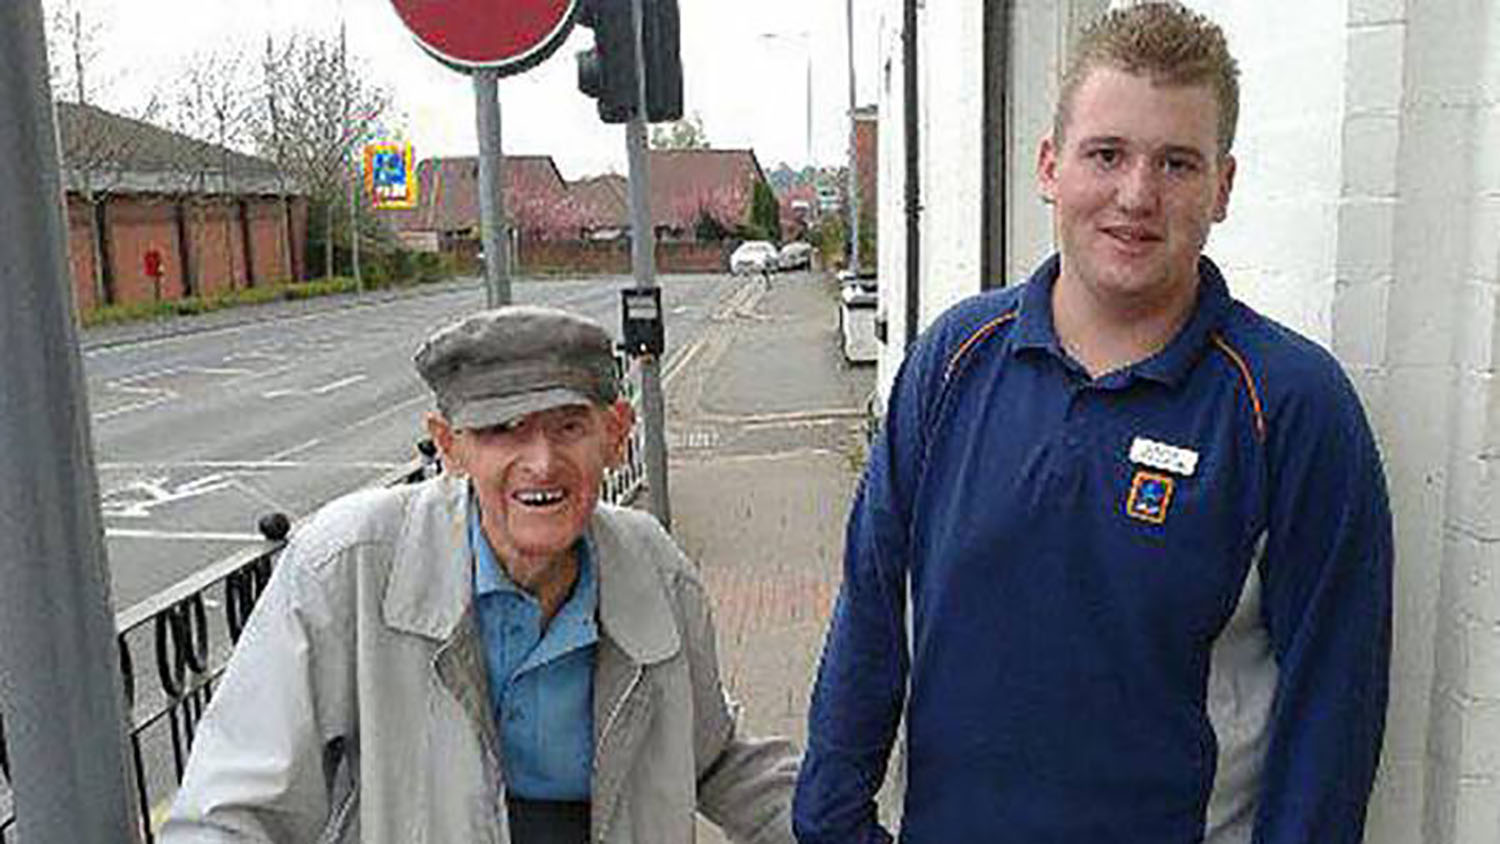 Teenager becomes internet hero after helping a 96-year-old man home